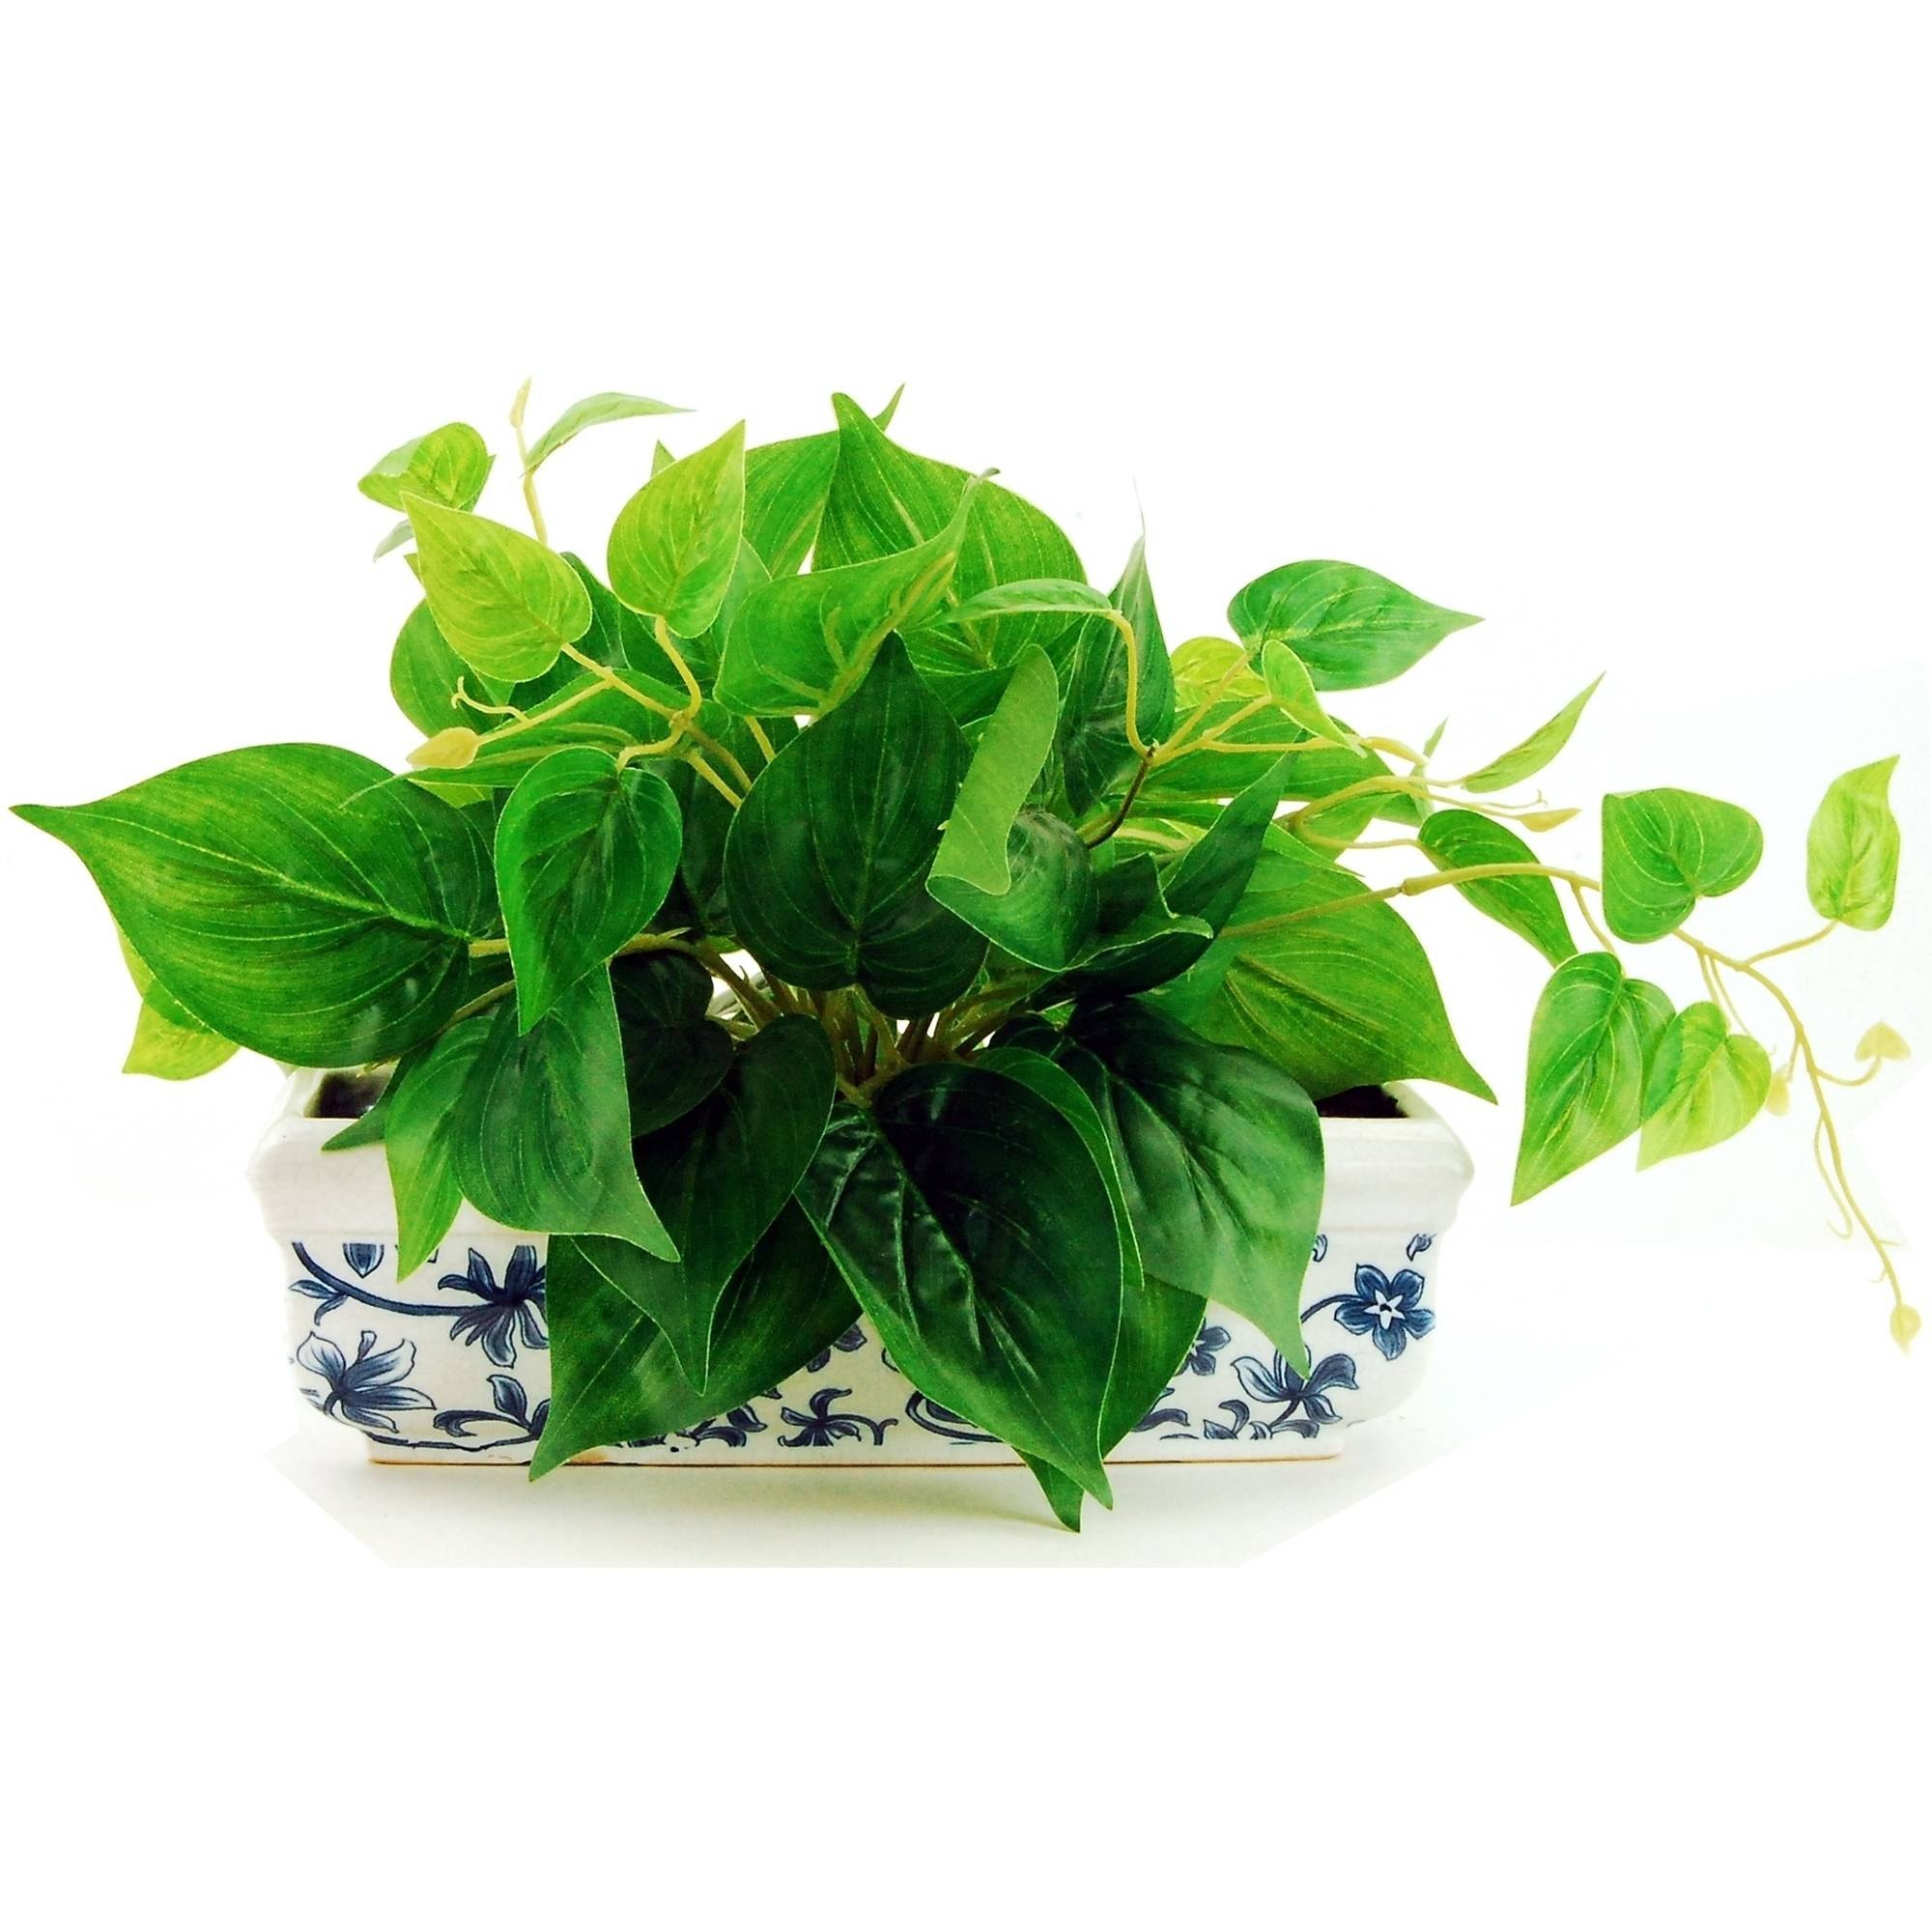 """10"""" Artificial Ivy Ledge Plant in a White Ceramic Vase with French Blue Scroll Pattern"""